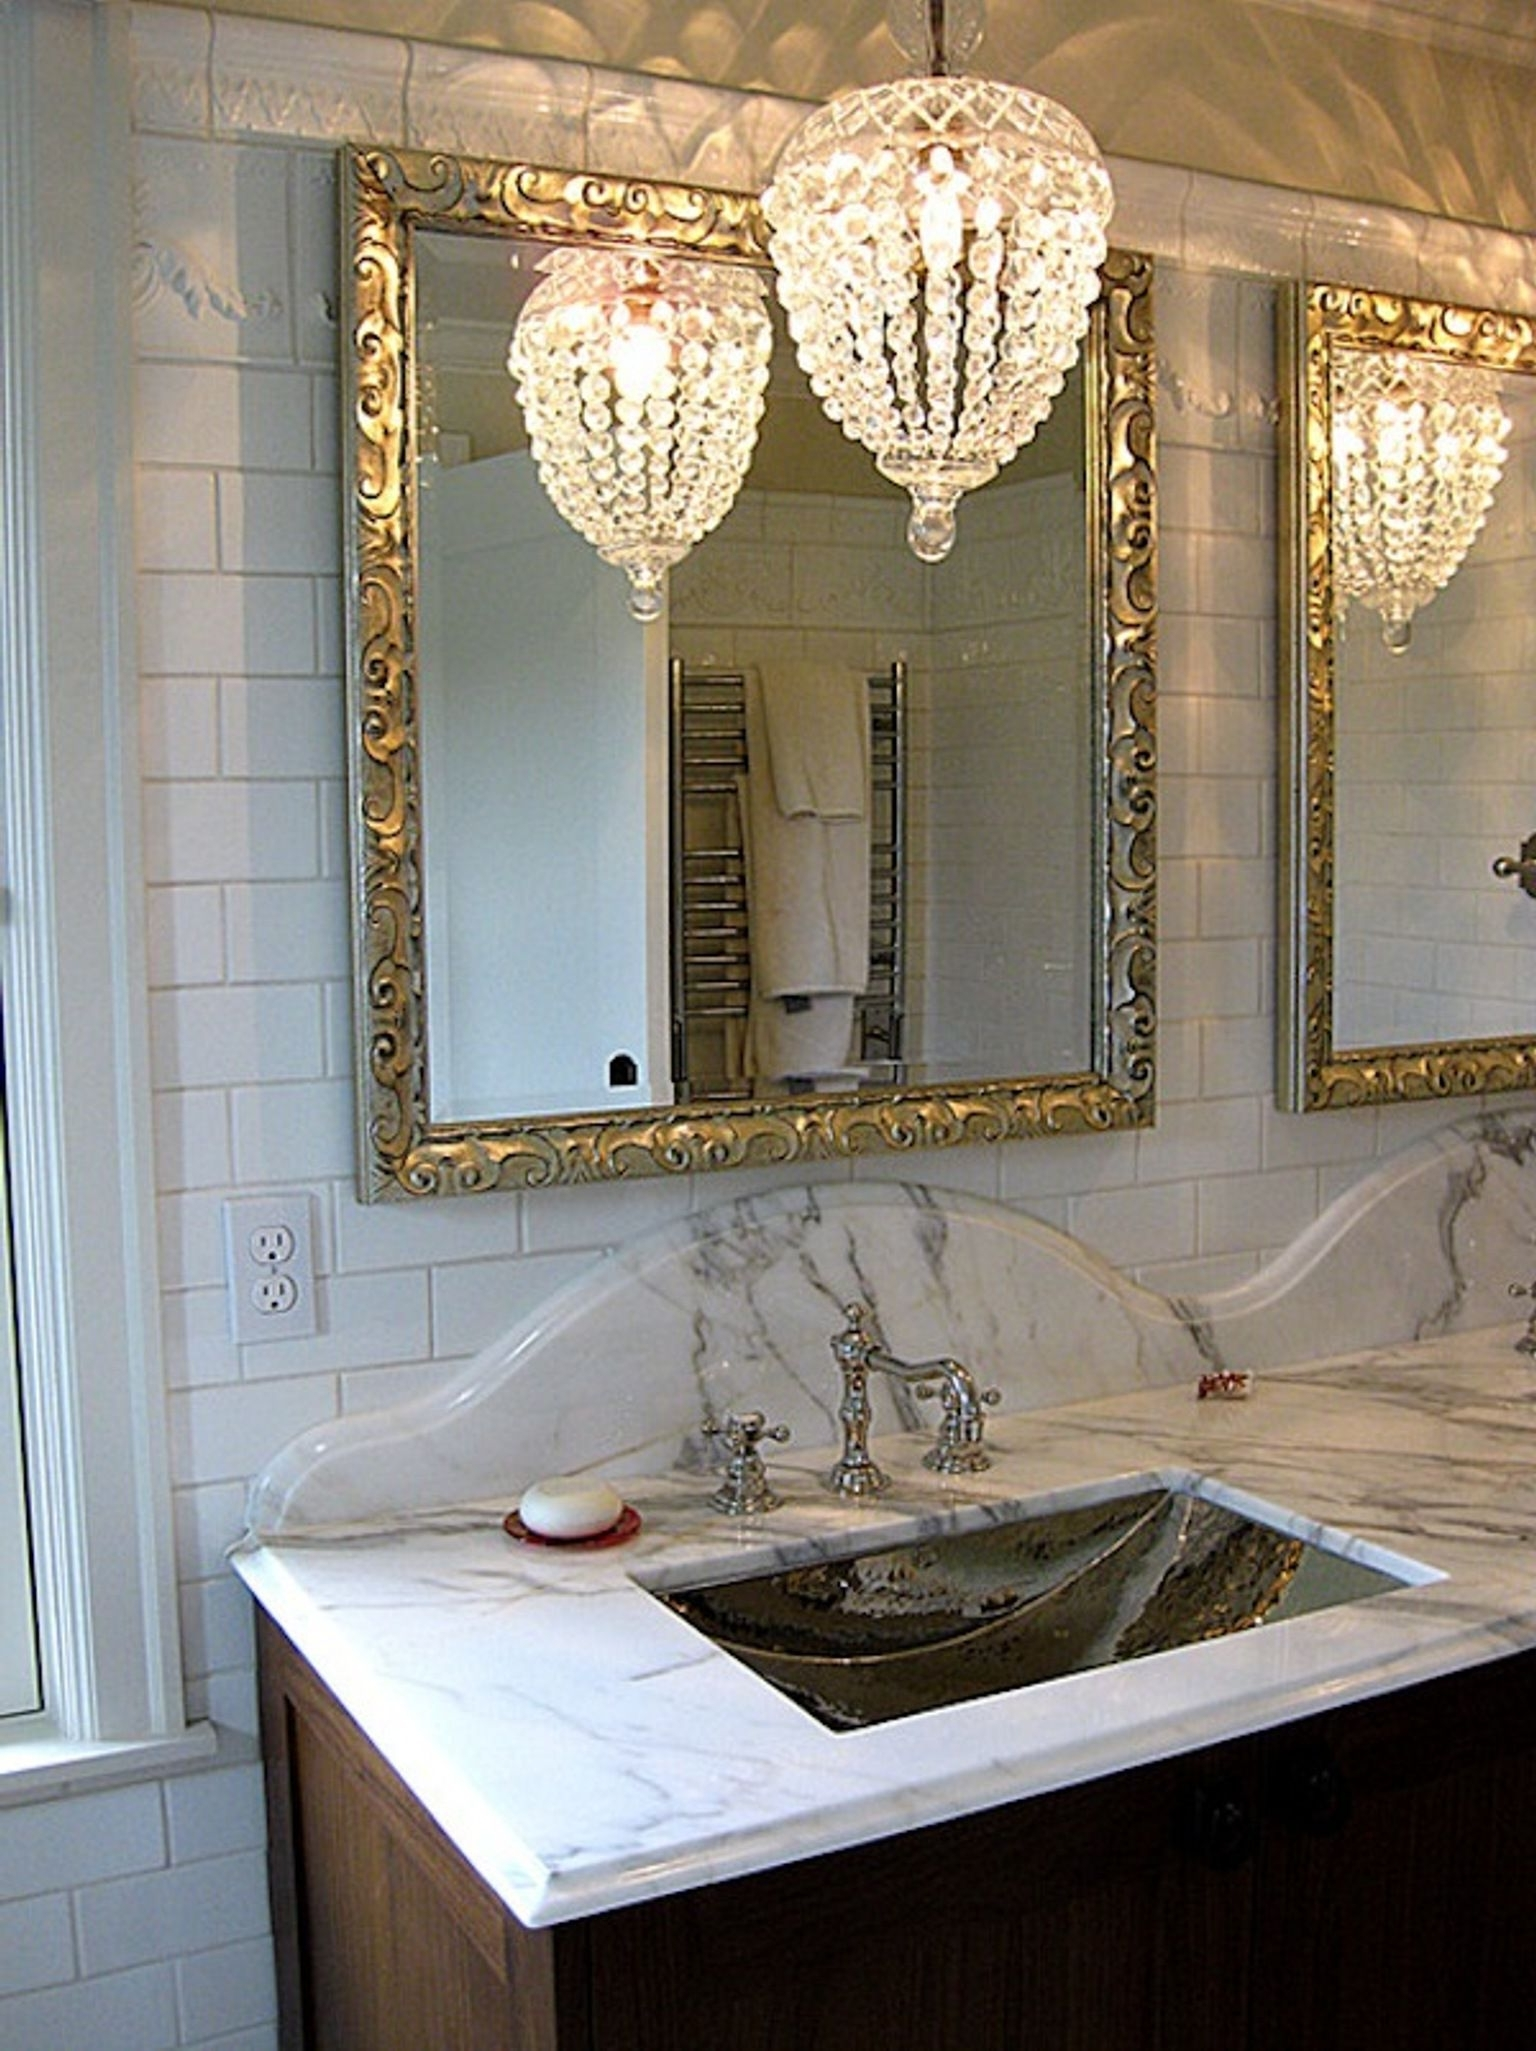 Famous Bathroom: Classical Bathroom Chandeliers Ikea With Curve Gold Frame Pertaining To Crystal Bathroom Chandelier (View 12 of 20)